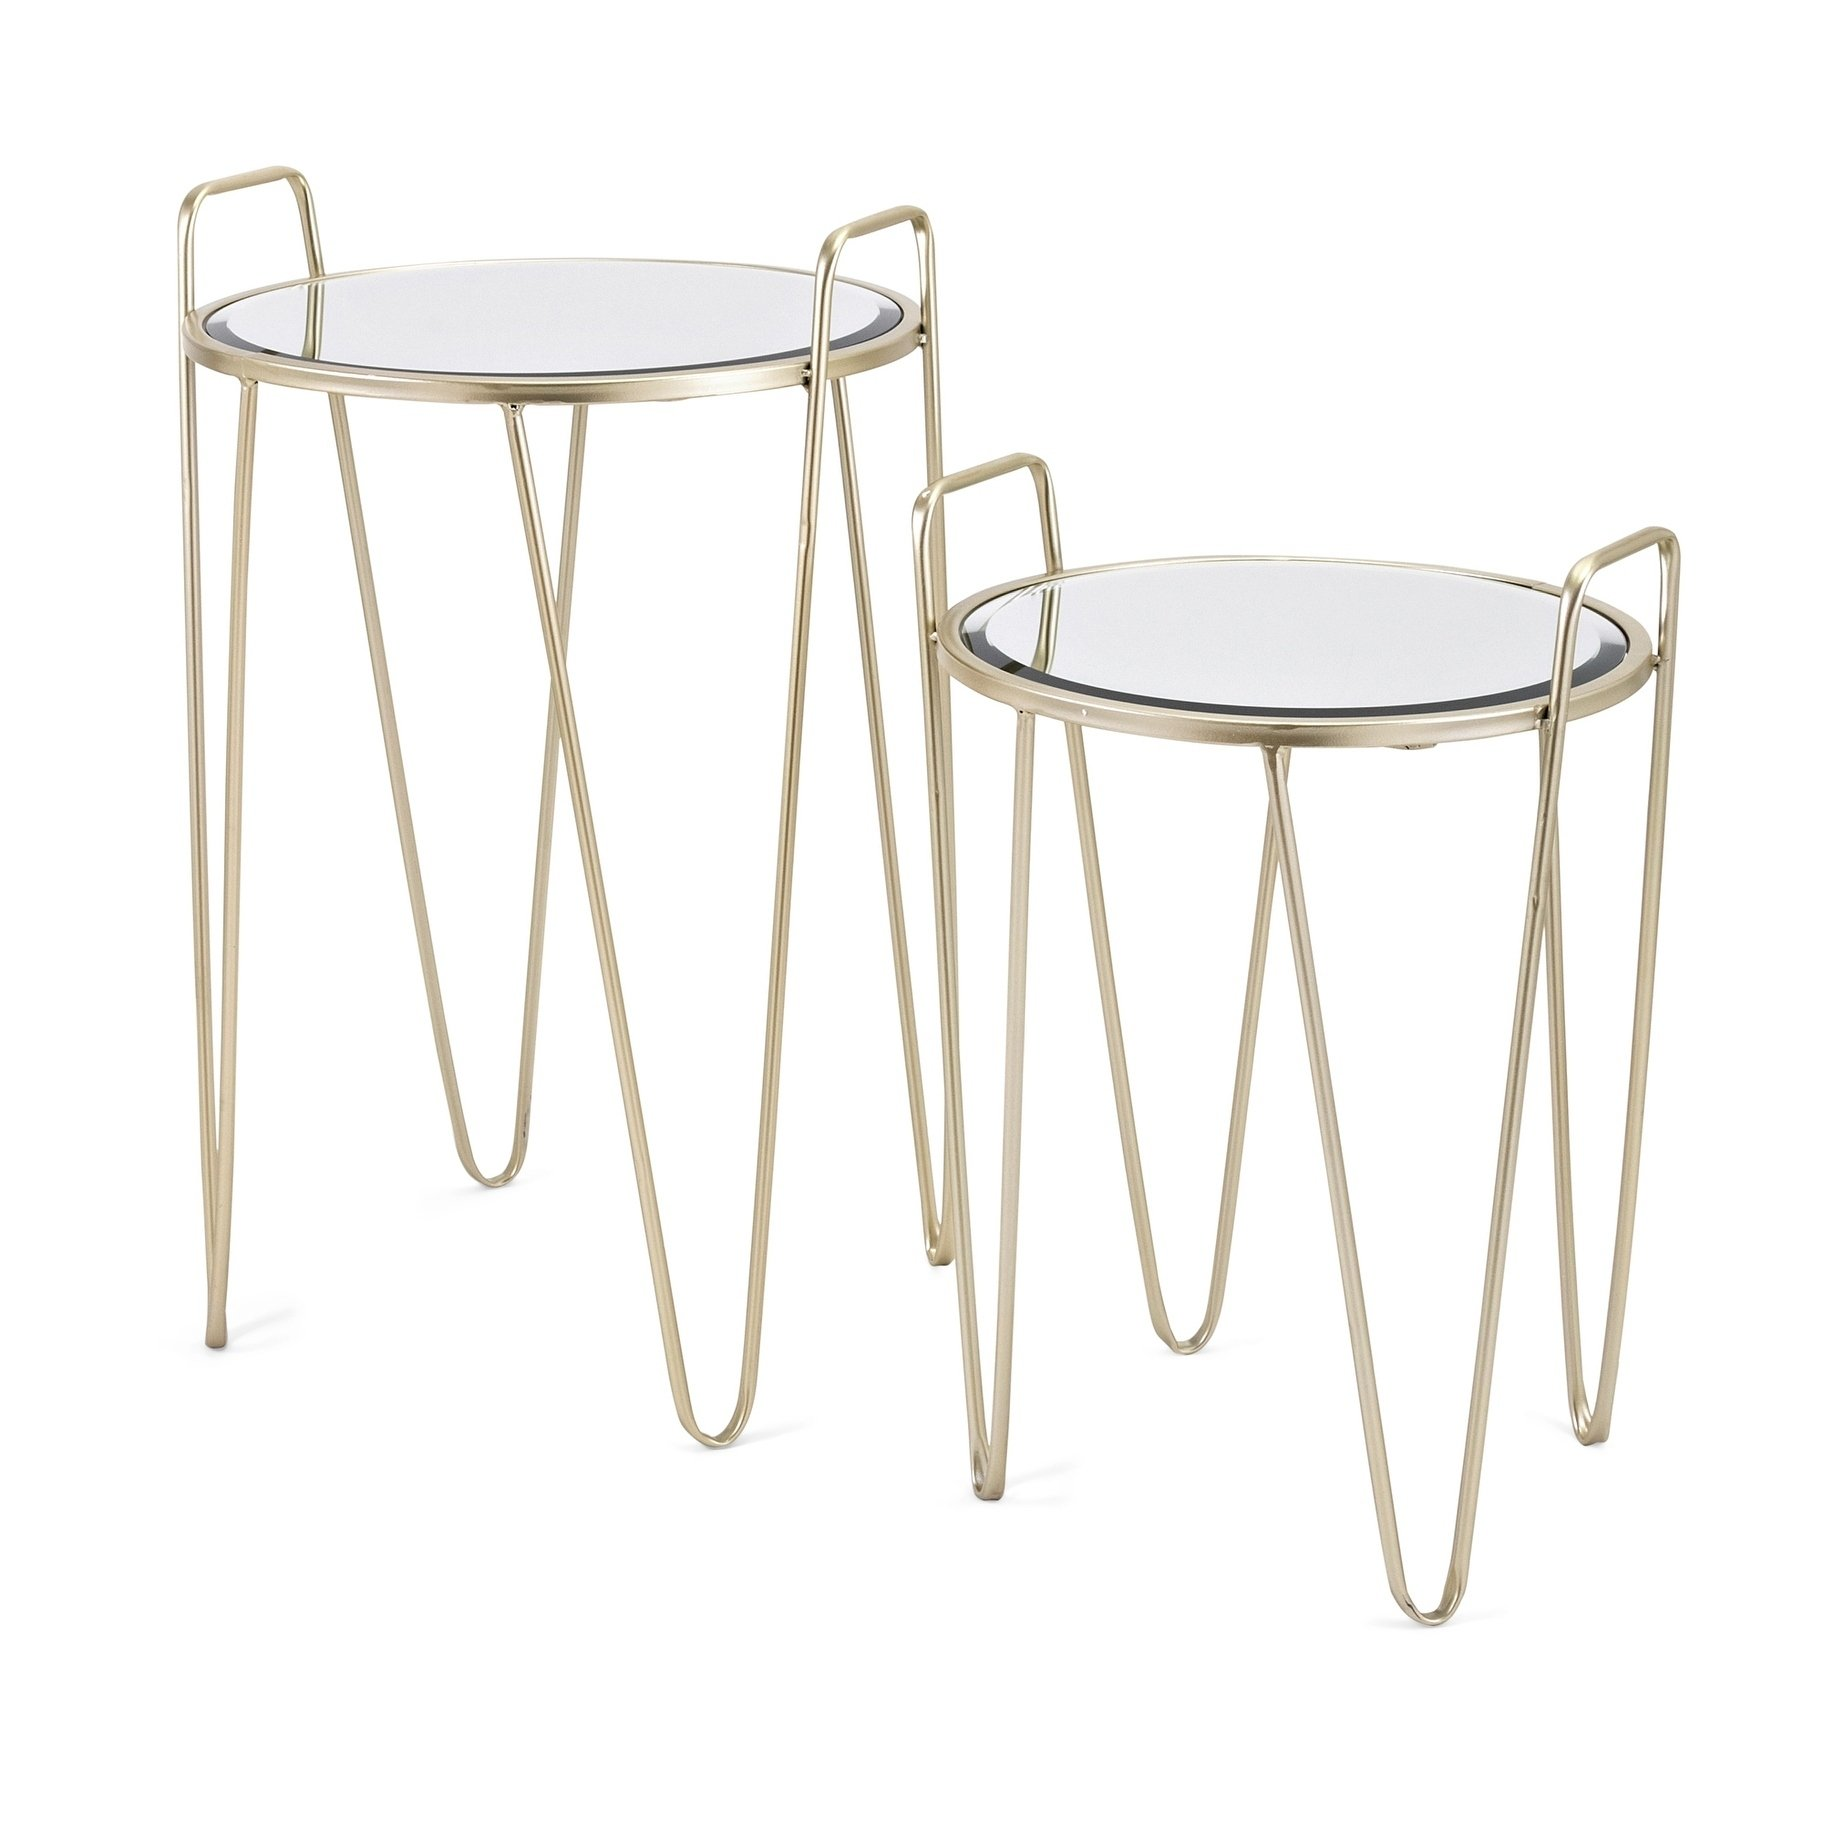 abigial satin gold accent tables set free table shipping today small folding plexiglass nesting round occasional best nightstands solid wood corner timber trestle legs short